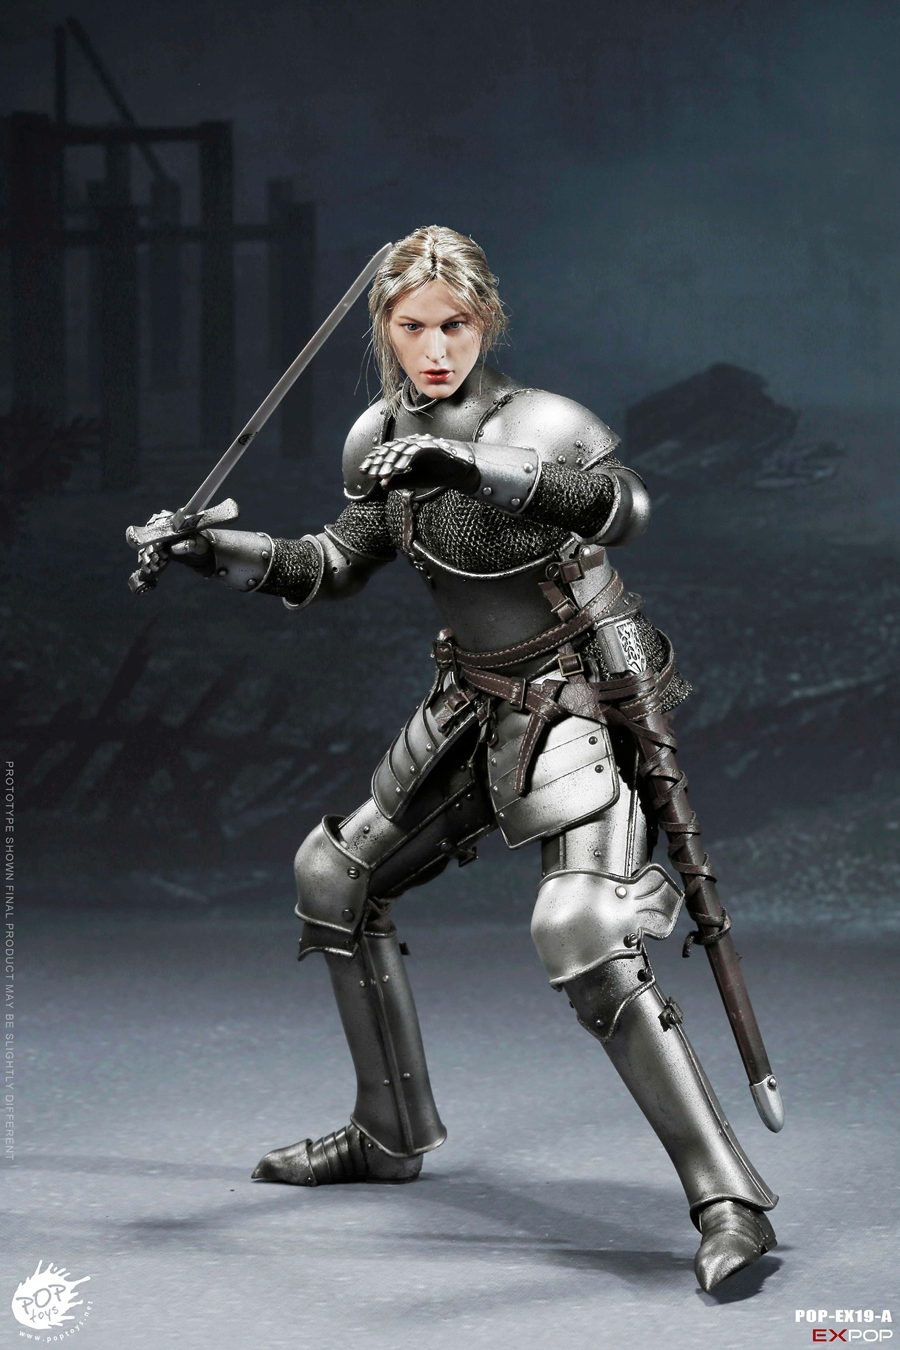 knight - NEW PRODUCT: POPTOYS New Products: 1/6 St. Knights - Assault Edition & Triumph Edition & Iron Armor (POP-EX19 ABC) 541